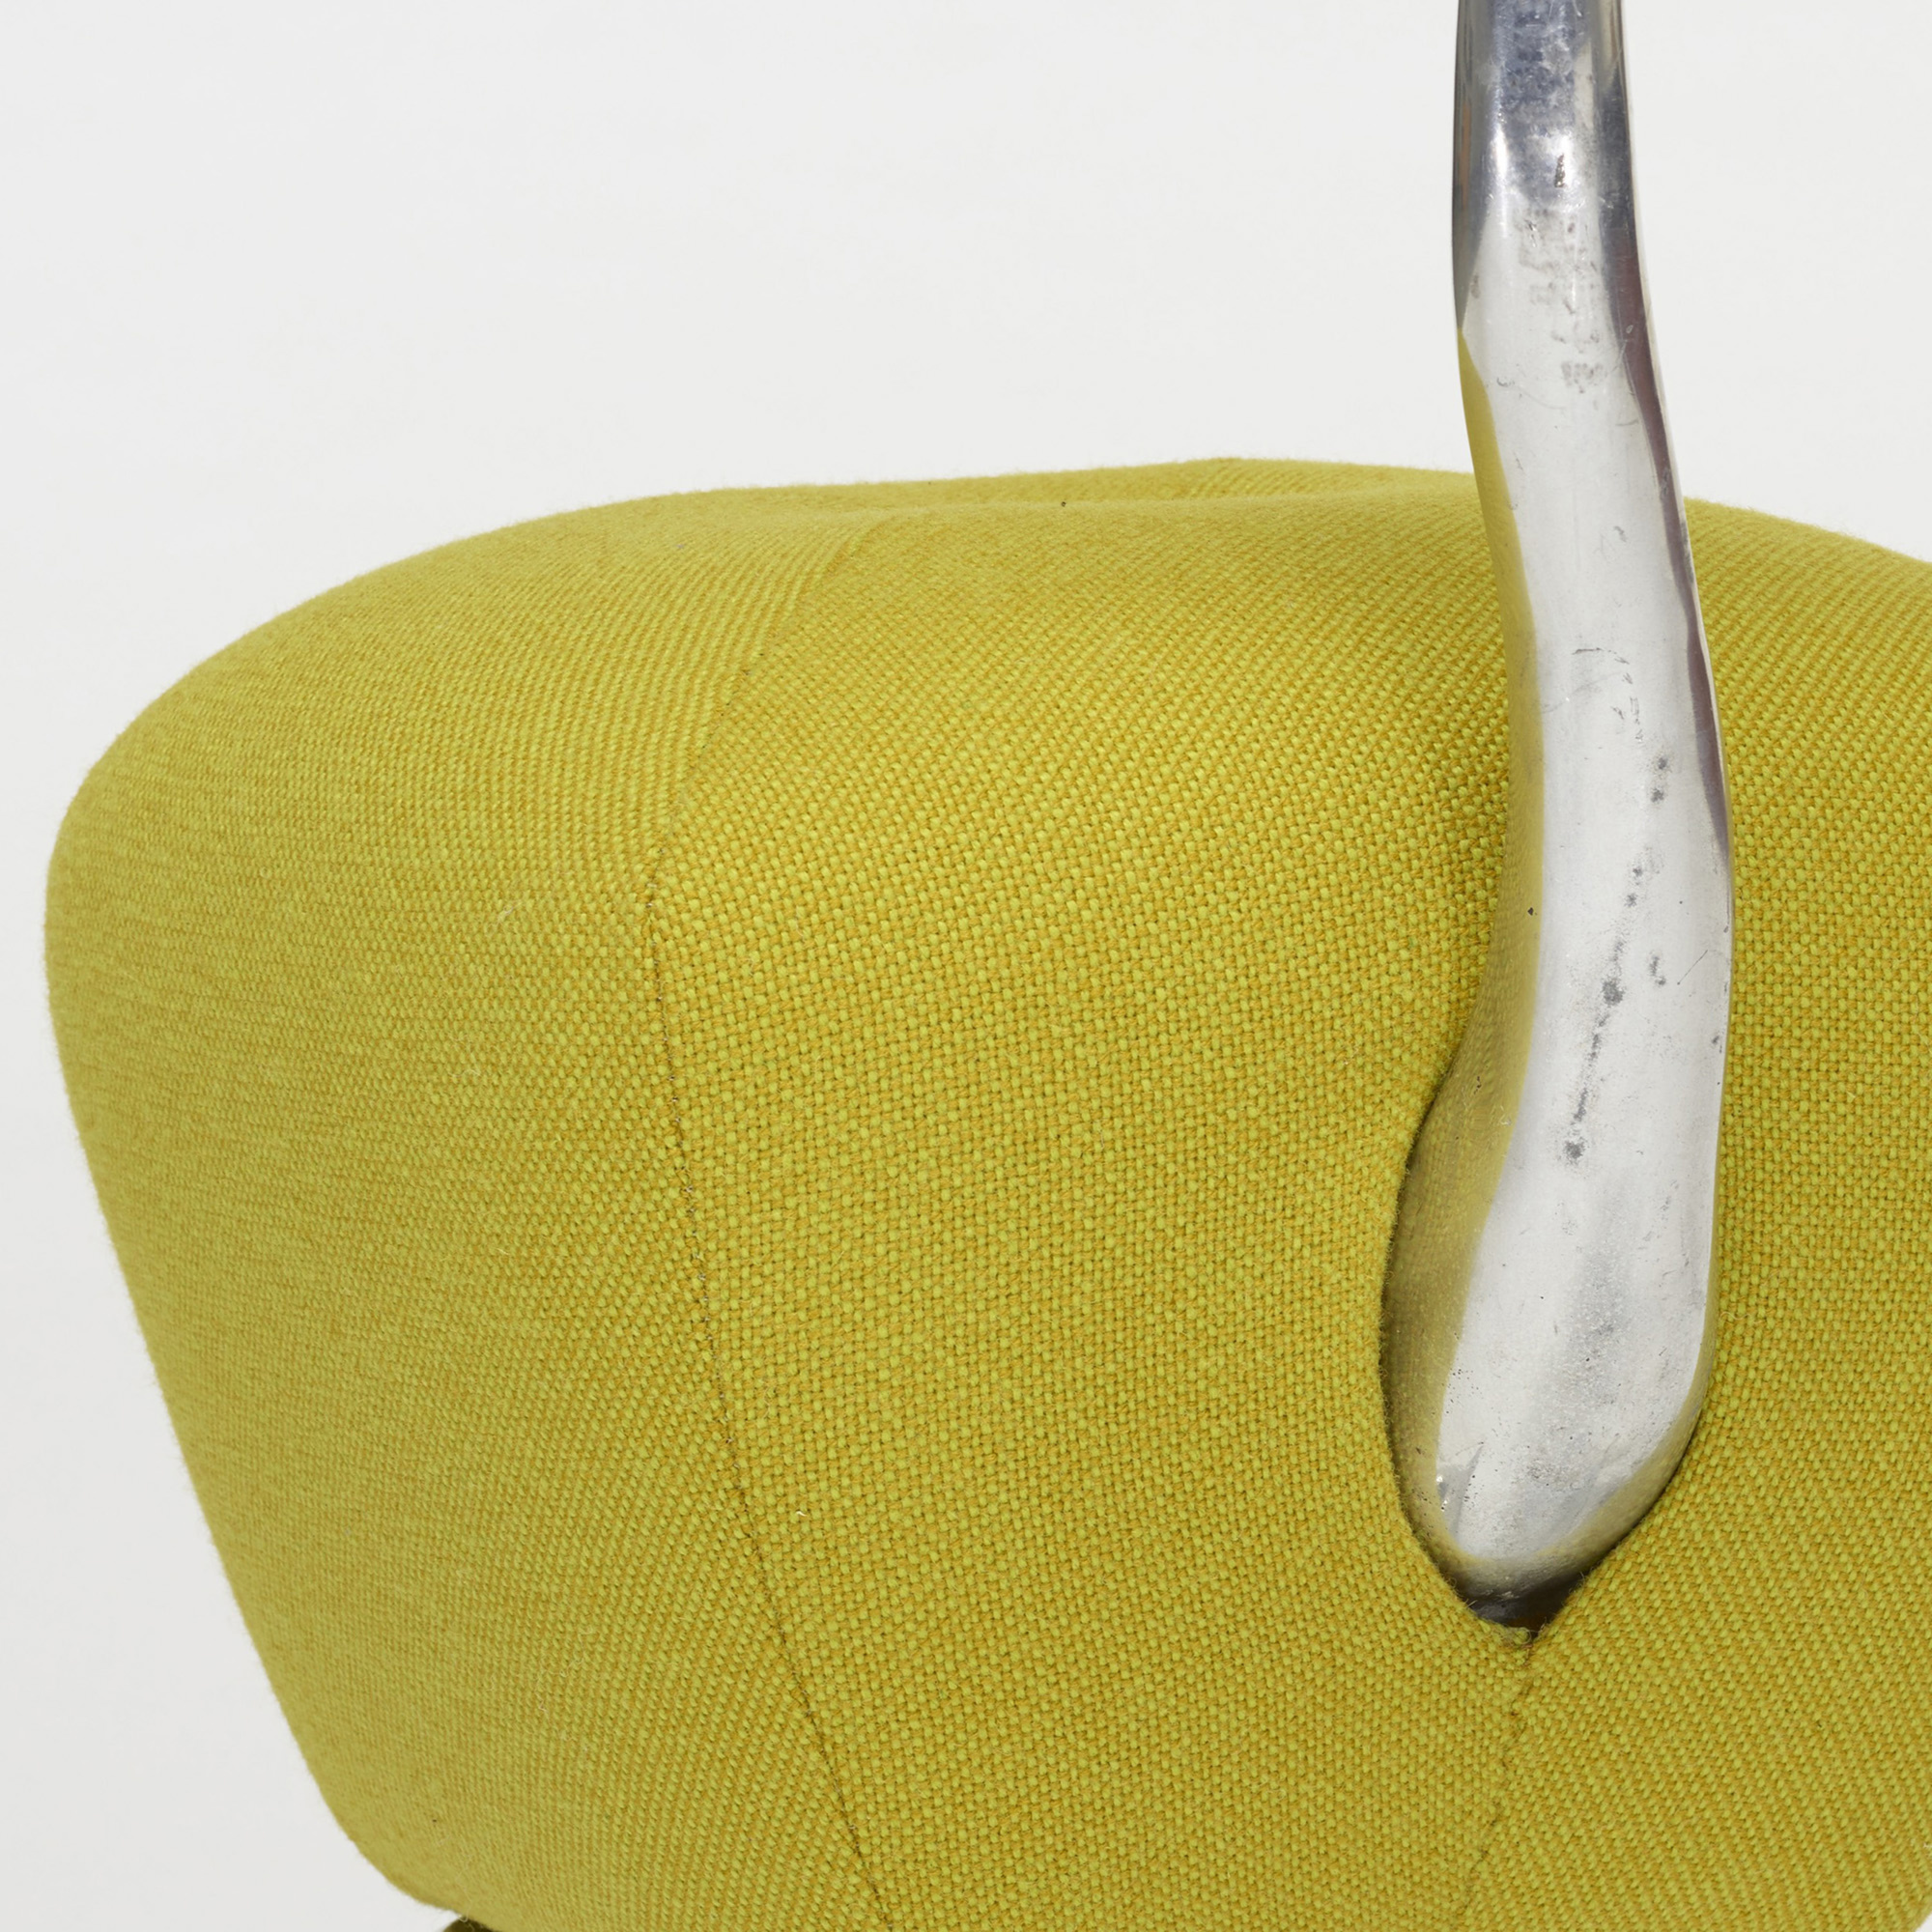 740: In the manner of Philippe Starck / stool (3 of 3)